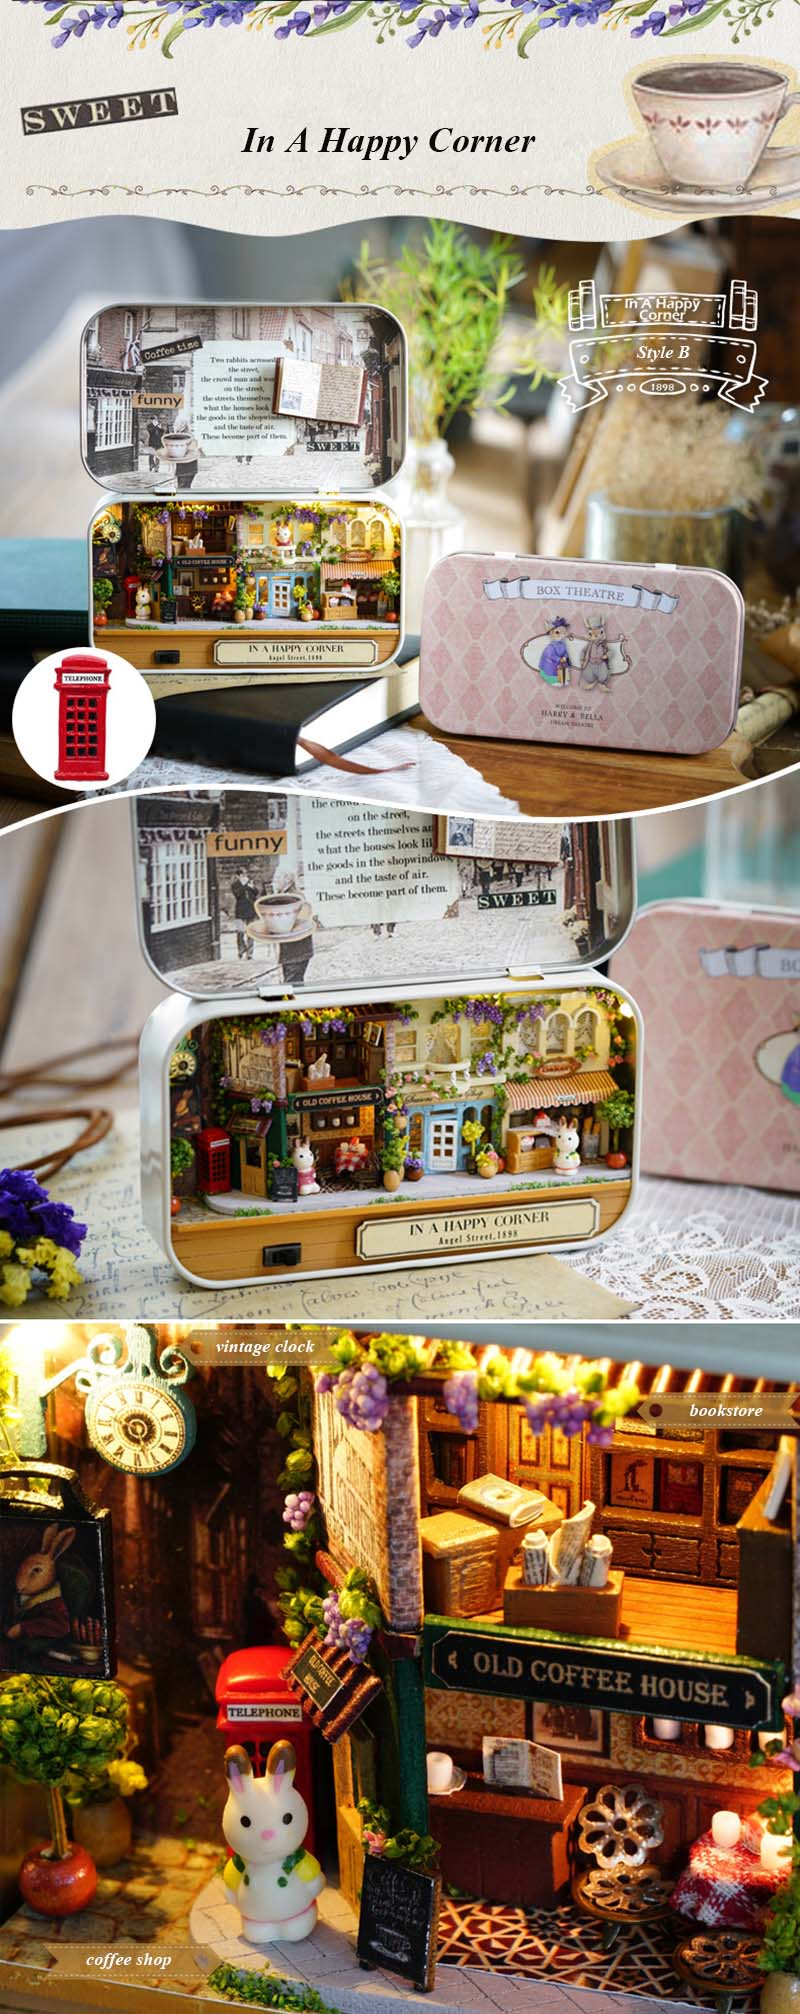 In A Happy Corner 3D Wooden DIY Handmade Box Theatre Dollhouse Miniature Box Cute Mini Doll House Assemble Kits Gift Toys (4)